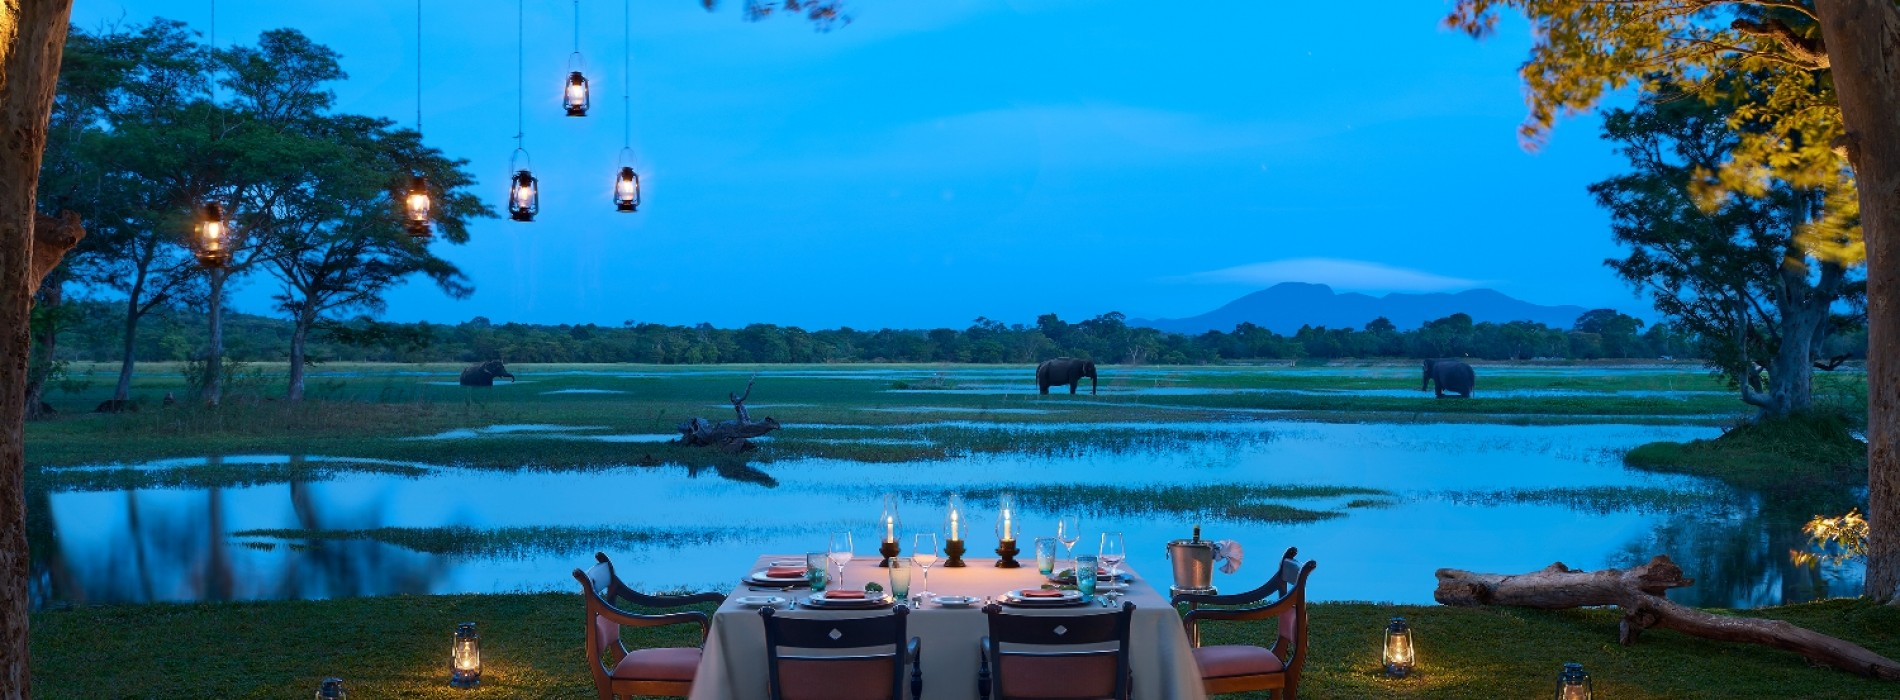 Cinnamon Hotels & Resorts launches a luxury wedding service for destination weddings in Sri Lanka